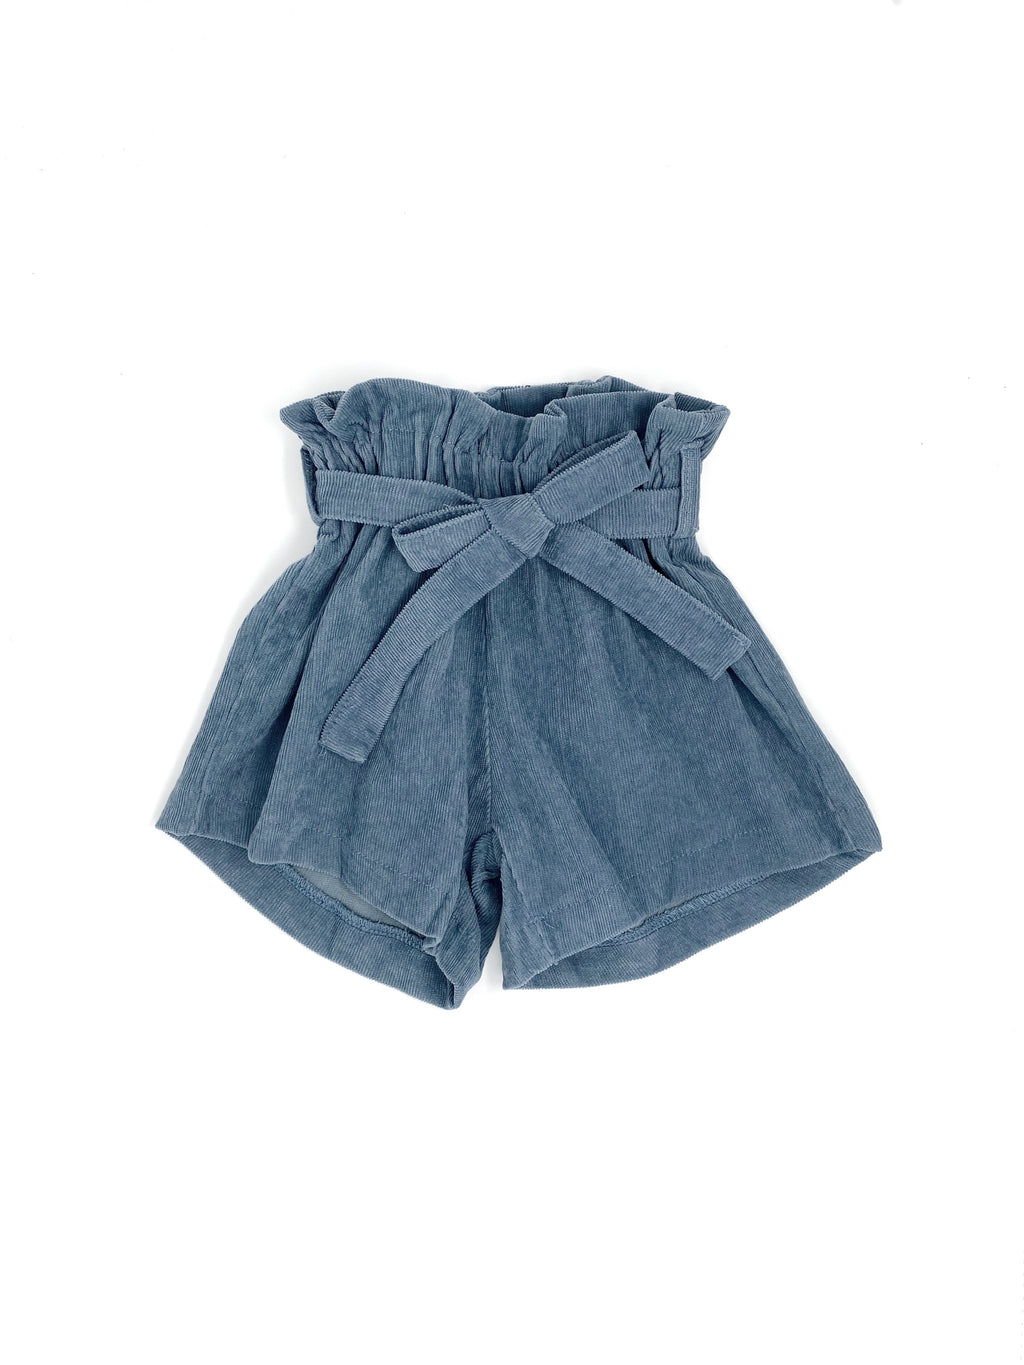 DENIM BLUE CORDUROY | SKIRT SHORTS